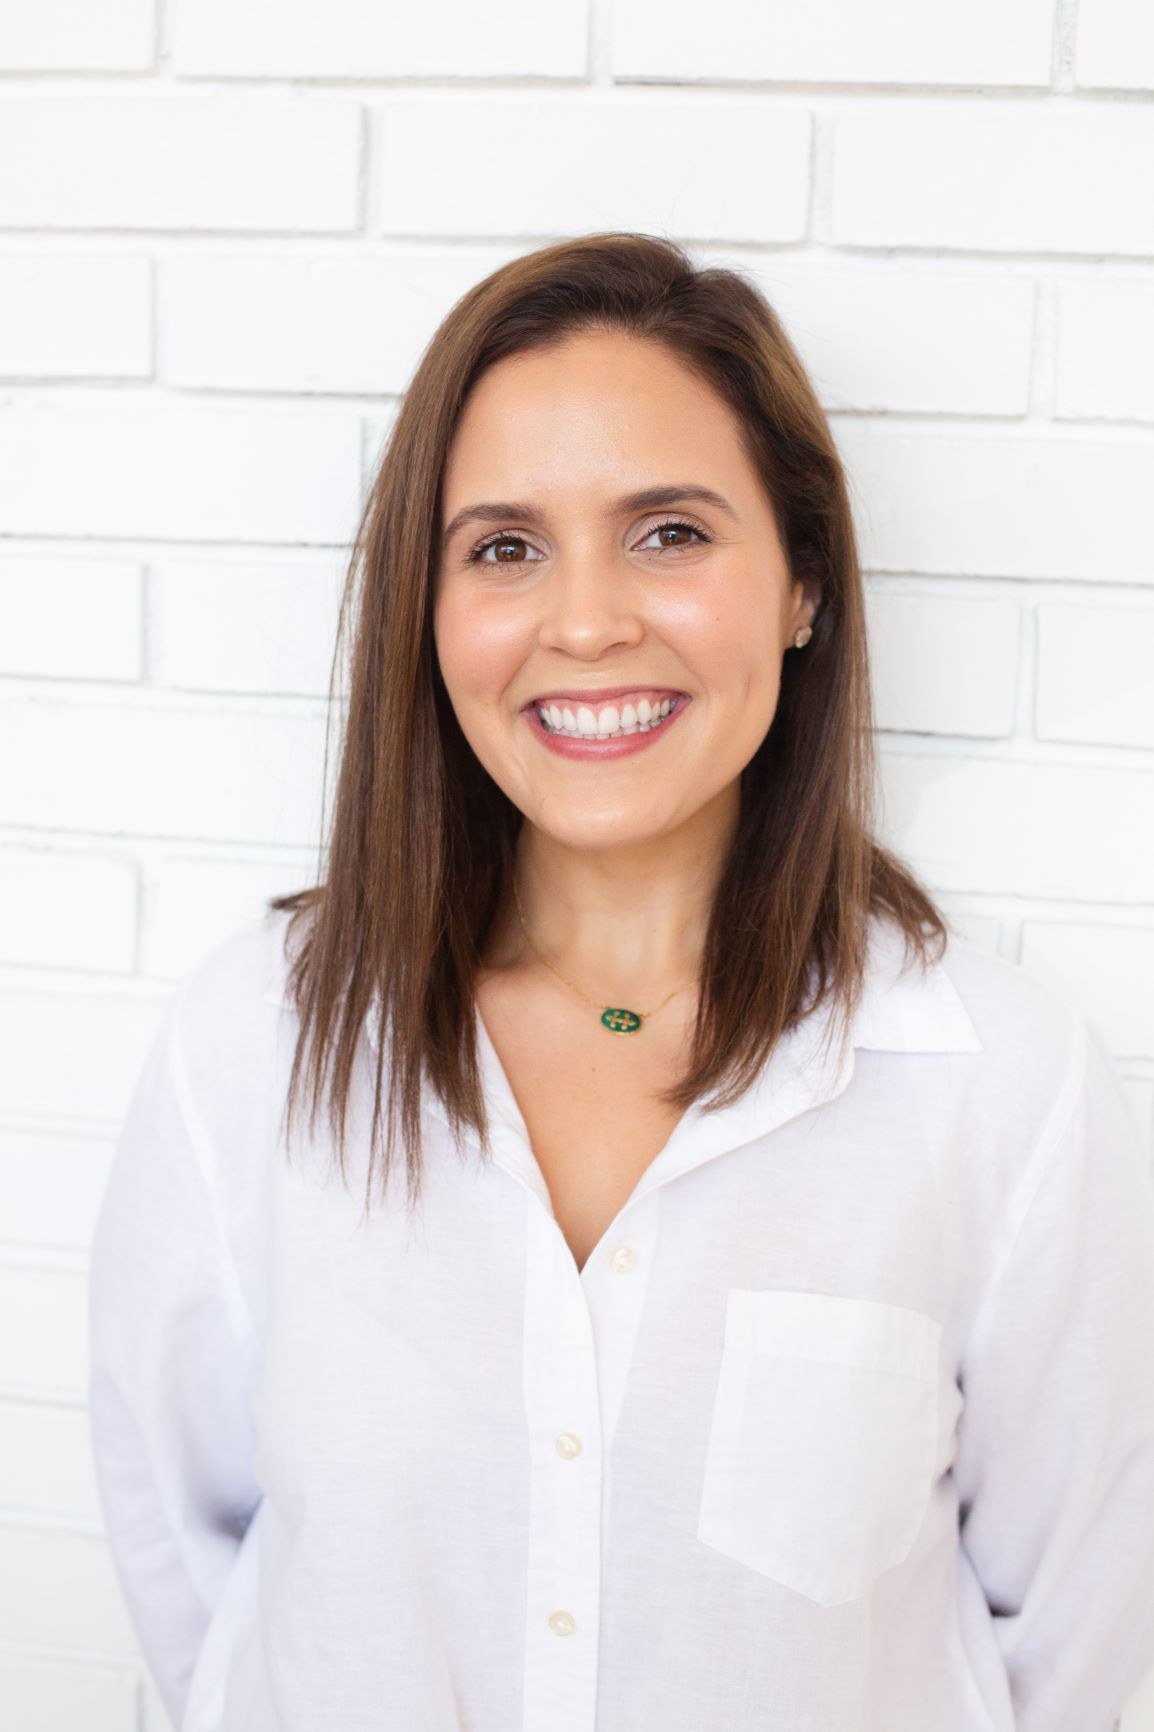 Jen Miranda , owner of serene, a new wellness bar located in the EDGE District of Downtown St Pete